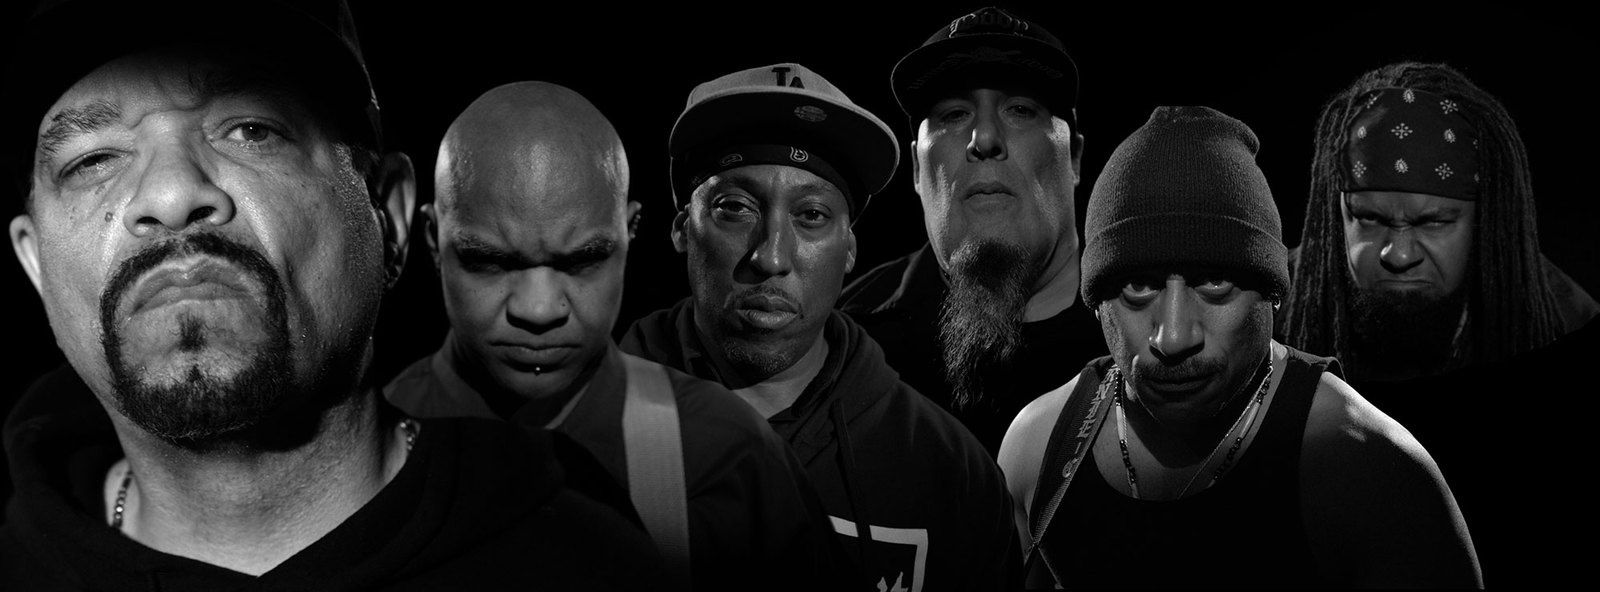 Nouveau clip animé de BODY COUNT &quot&#x3B;The Ski Mask Way&quot&#x3B;